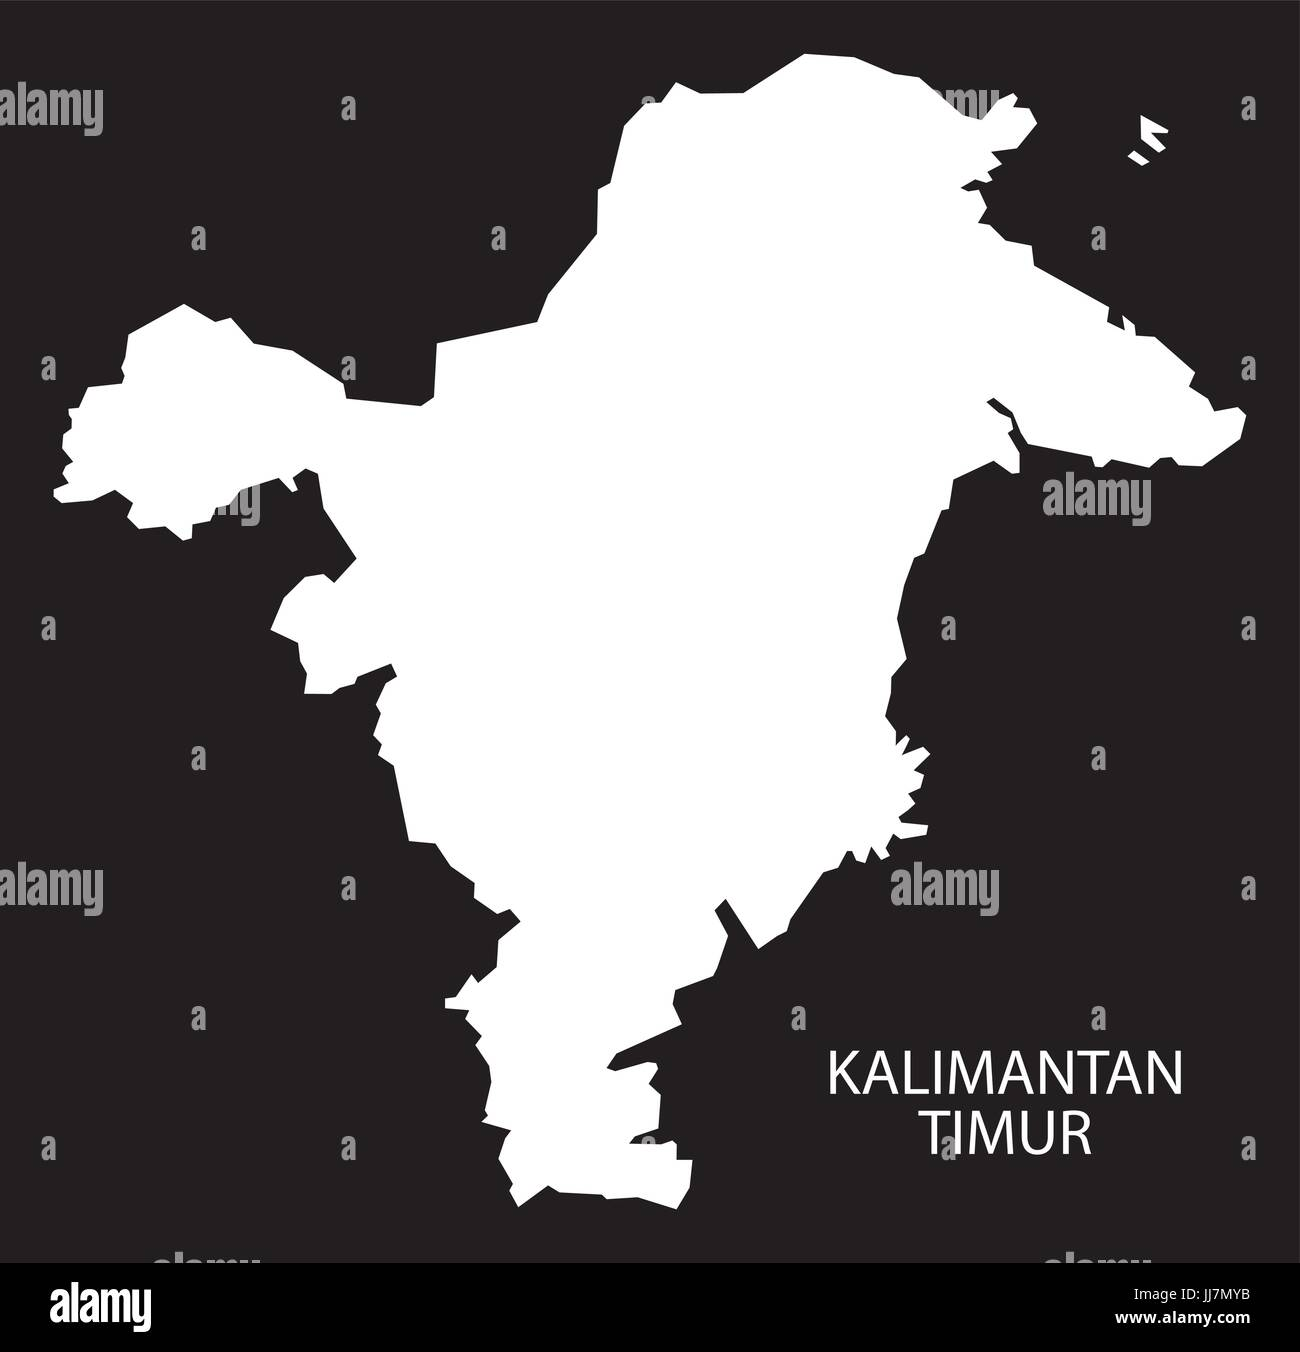 kalimantan timur indonesia map black inverted silhouette illustration stock vector image art alamy https www alamy com stock photo kalimantan timur indonesia map black inverted silhouette illustration 148916863 html